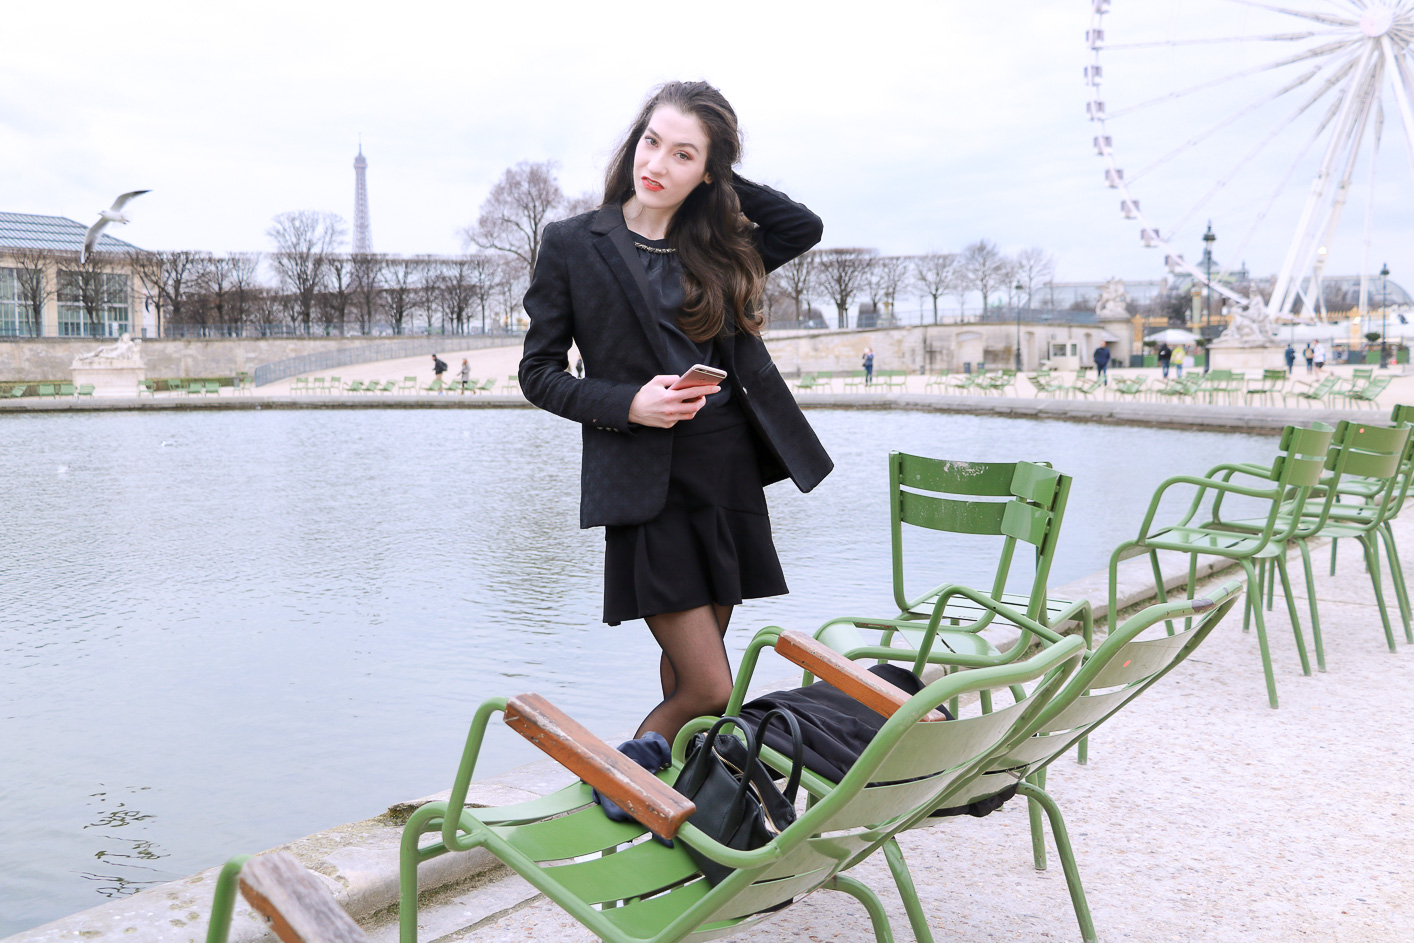 Fashion Blogger Veronika Lipar of Brunette from Wall Street sharing how to wear chic black ruffled mini skirt, sexy black tights and white sneakers like a chic Parisian fashionista